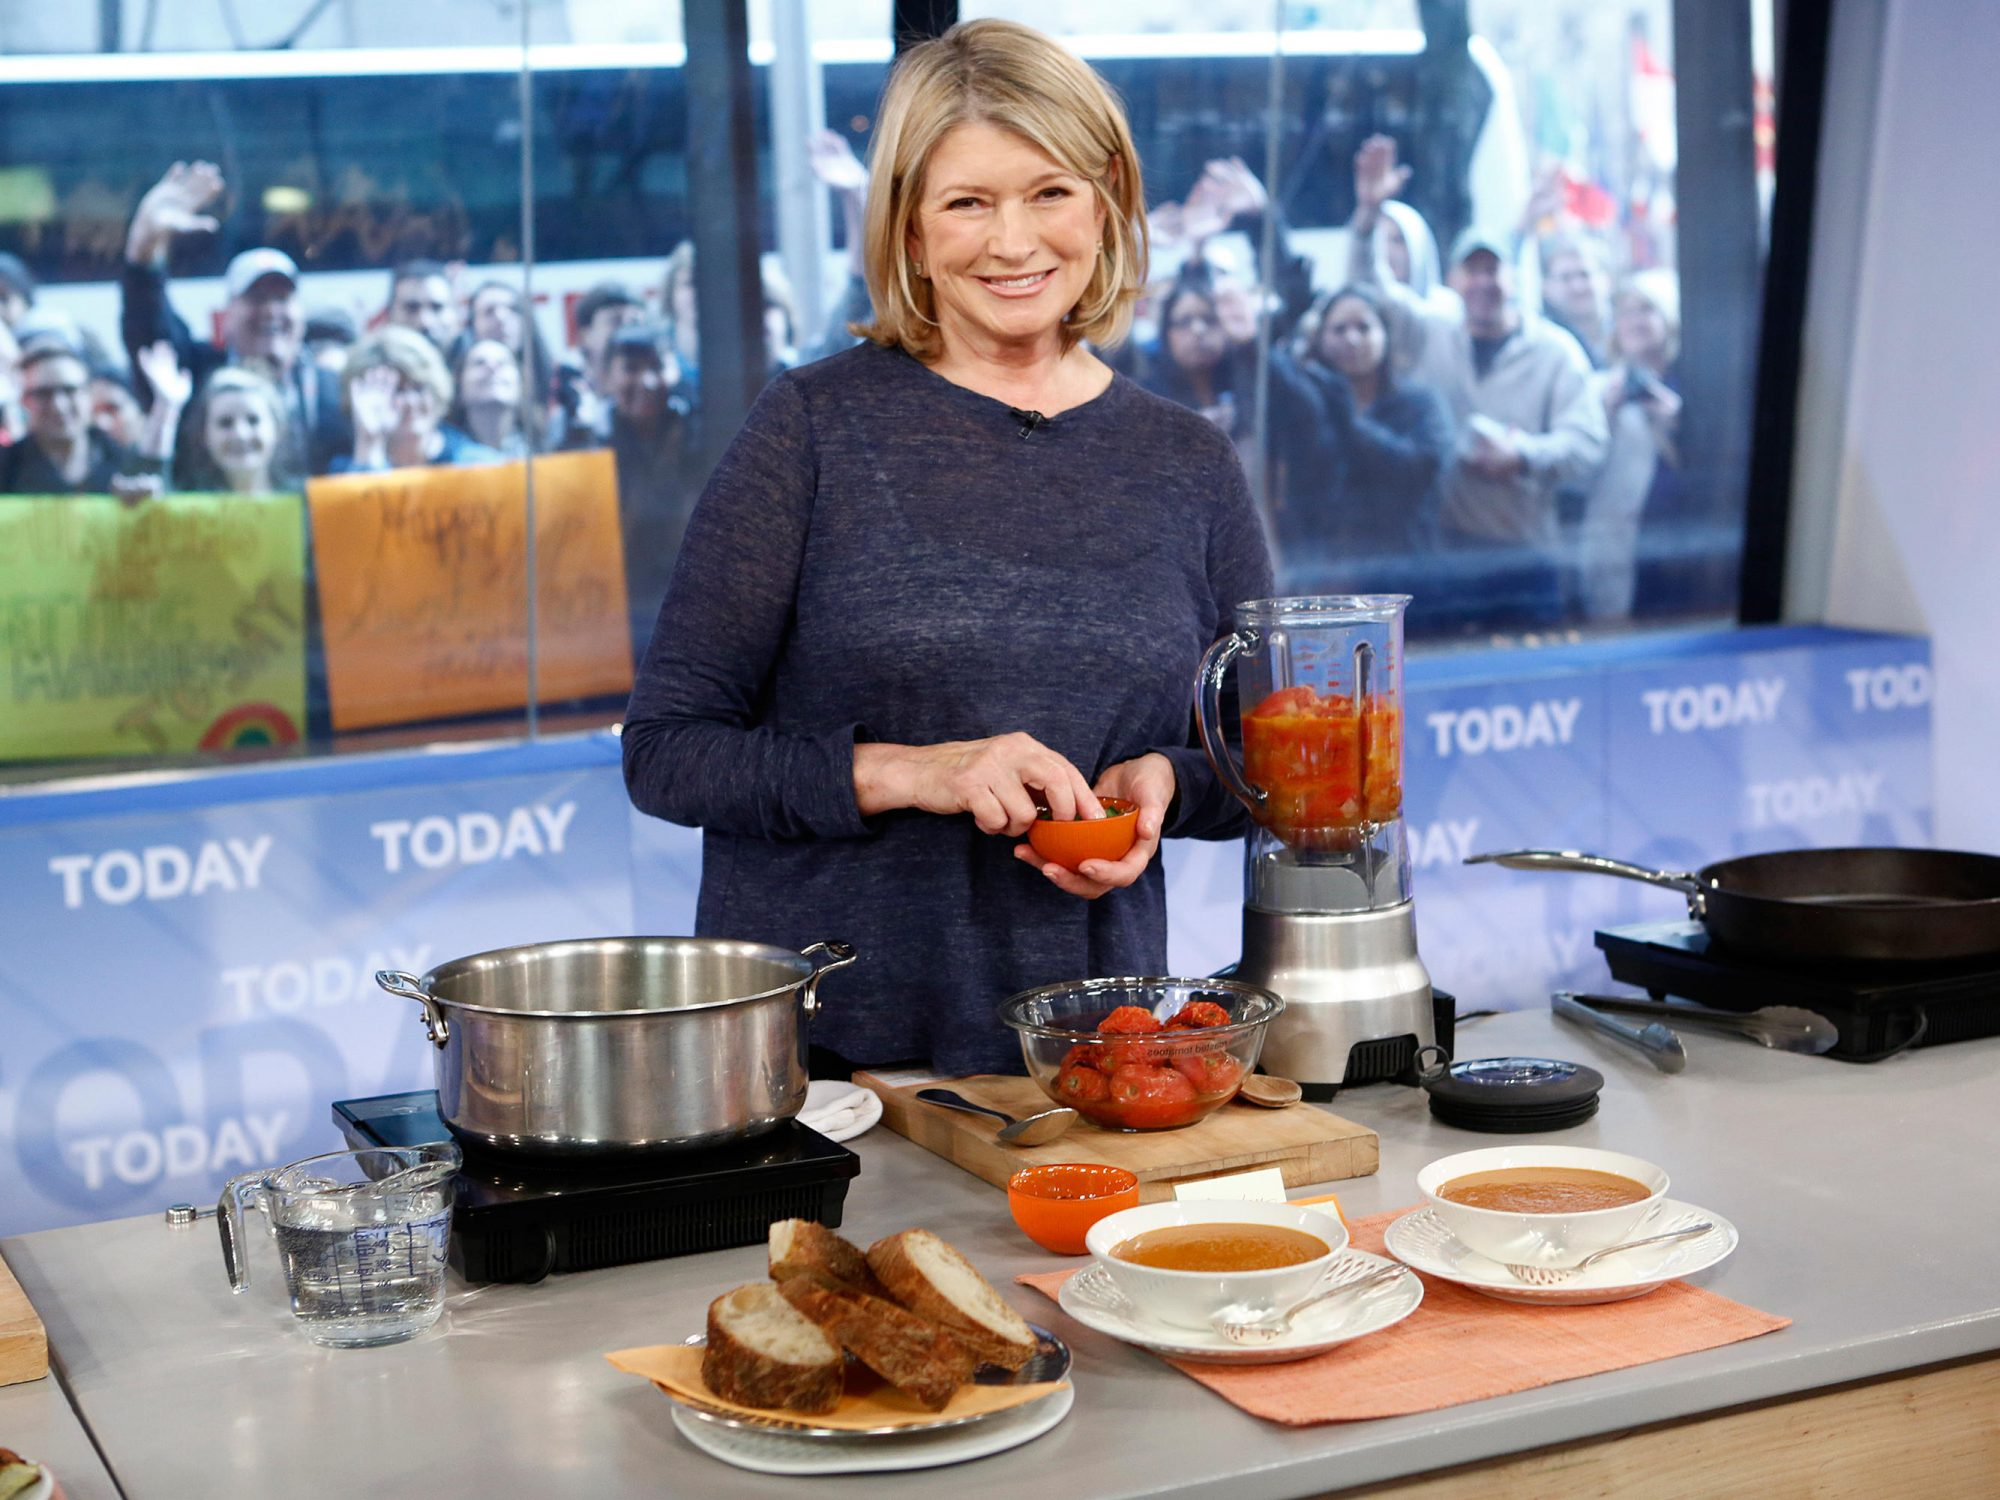 4 Surprising Things Martha Stewart Does to Stay Healthy and Look Younger 1804w-Martha-Stewart